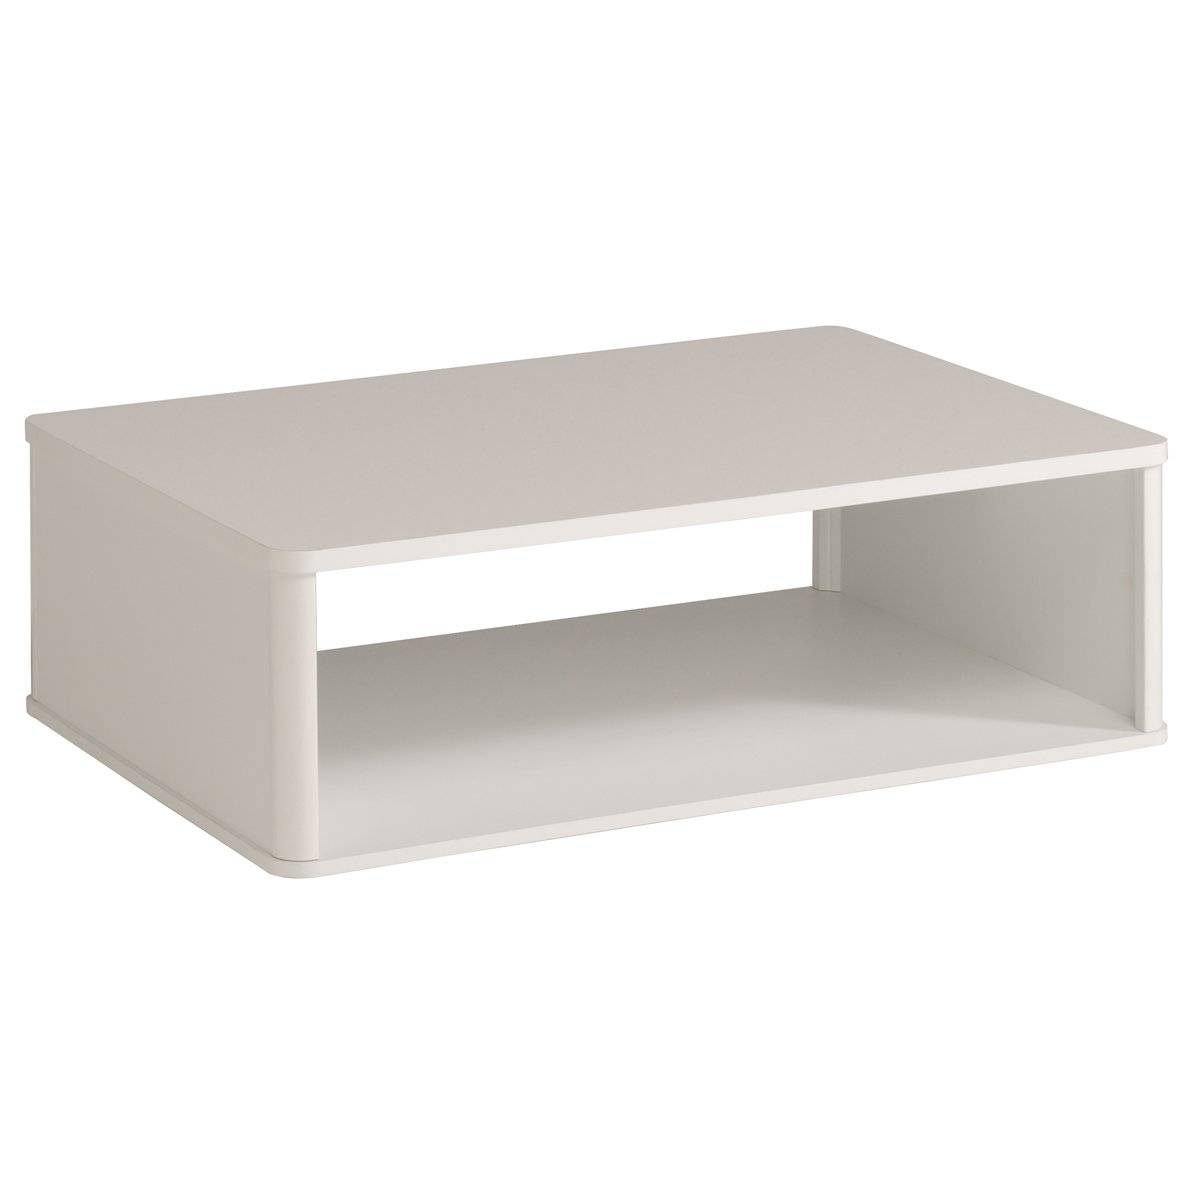 Homestead Living Yogo Coffee Table With Magazine Rack | Wayfair.co.uk throughout Coffee Tables With Magazine Rack (Image 7 of 30)